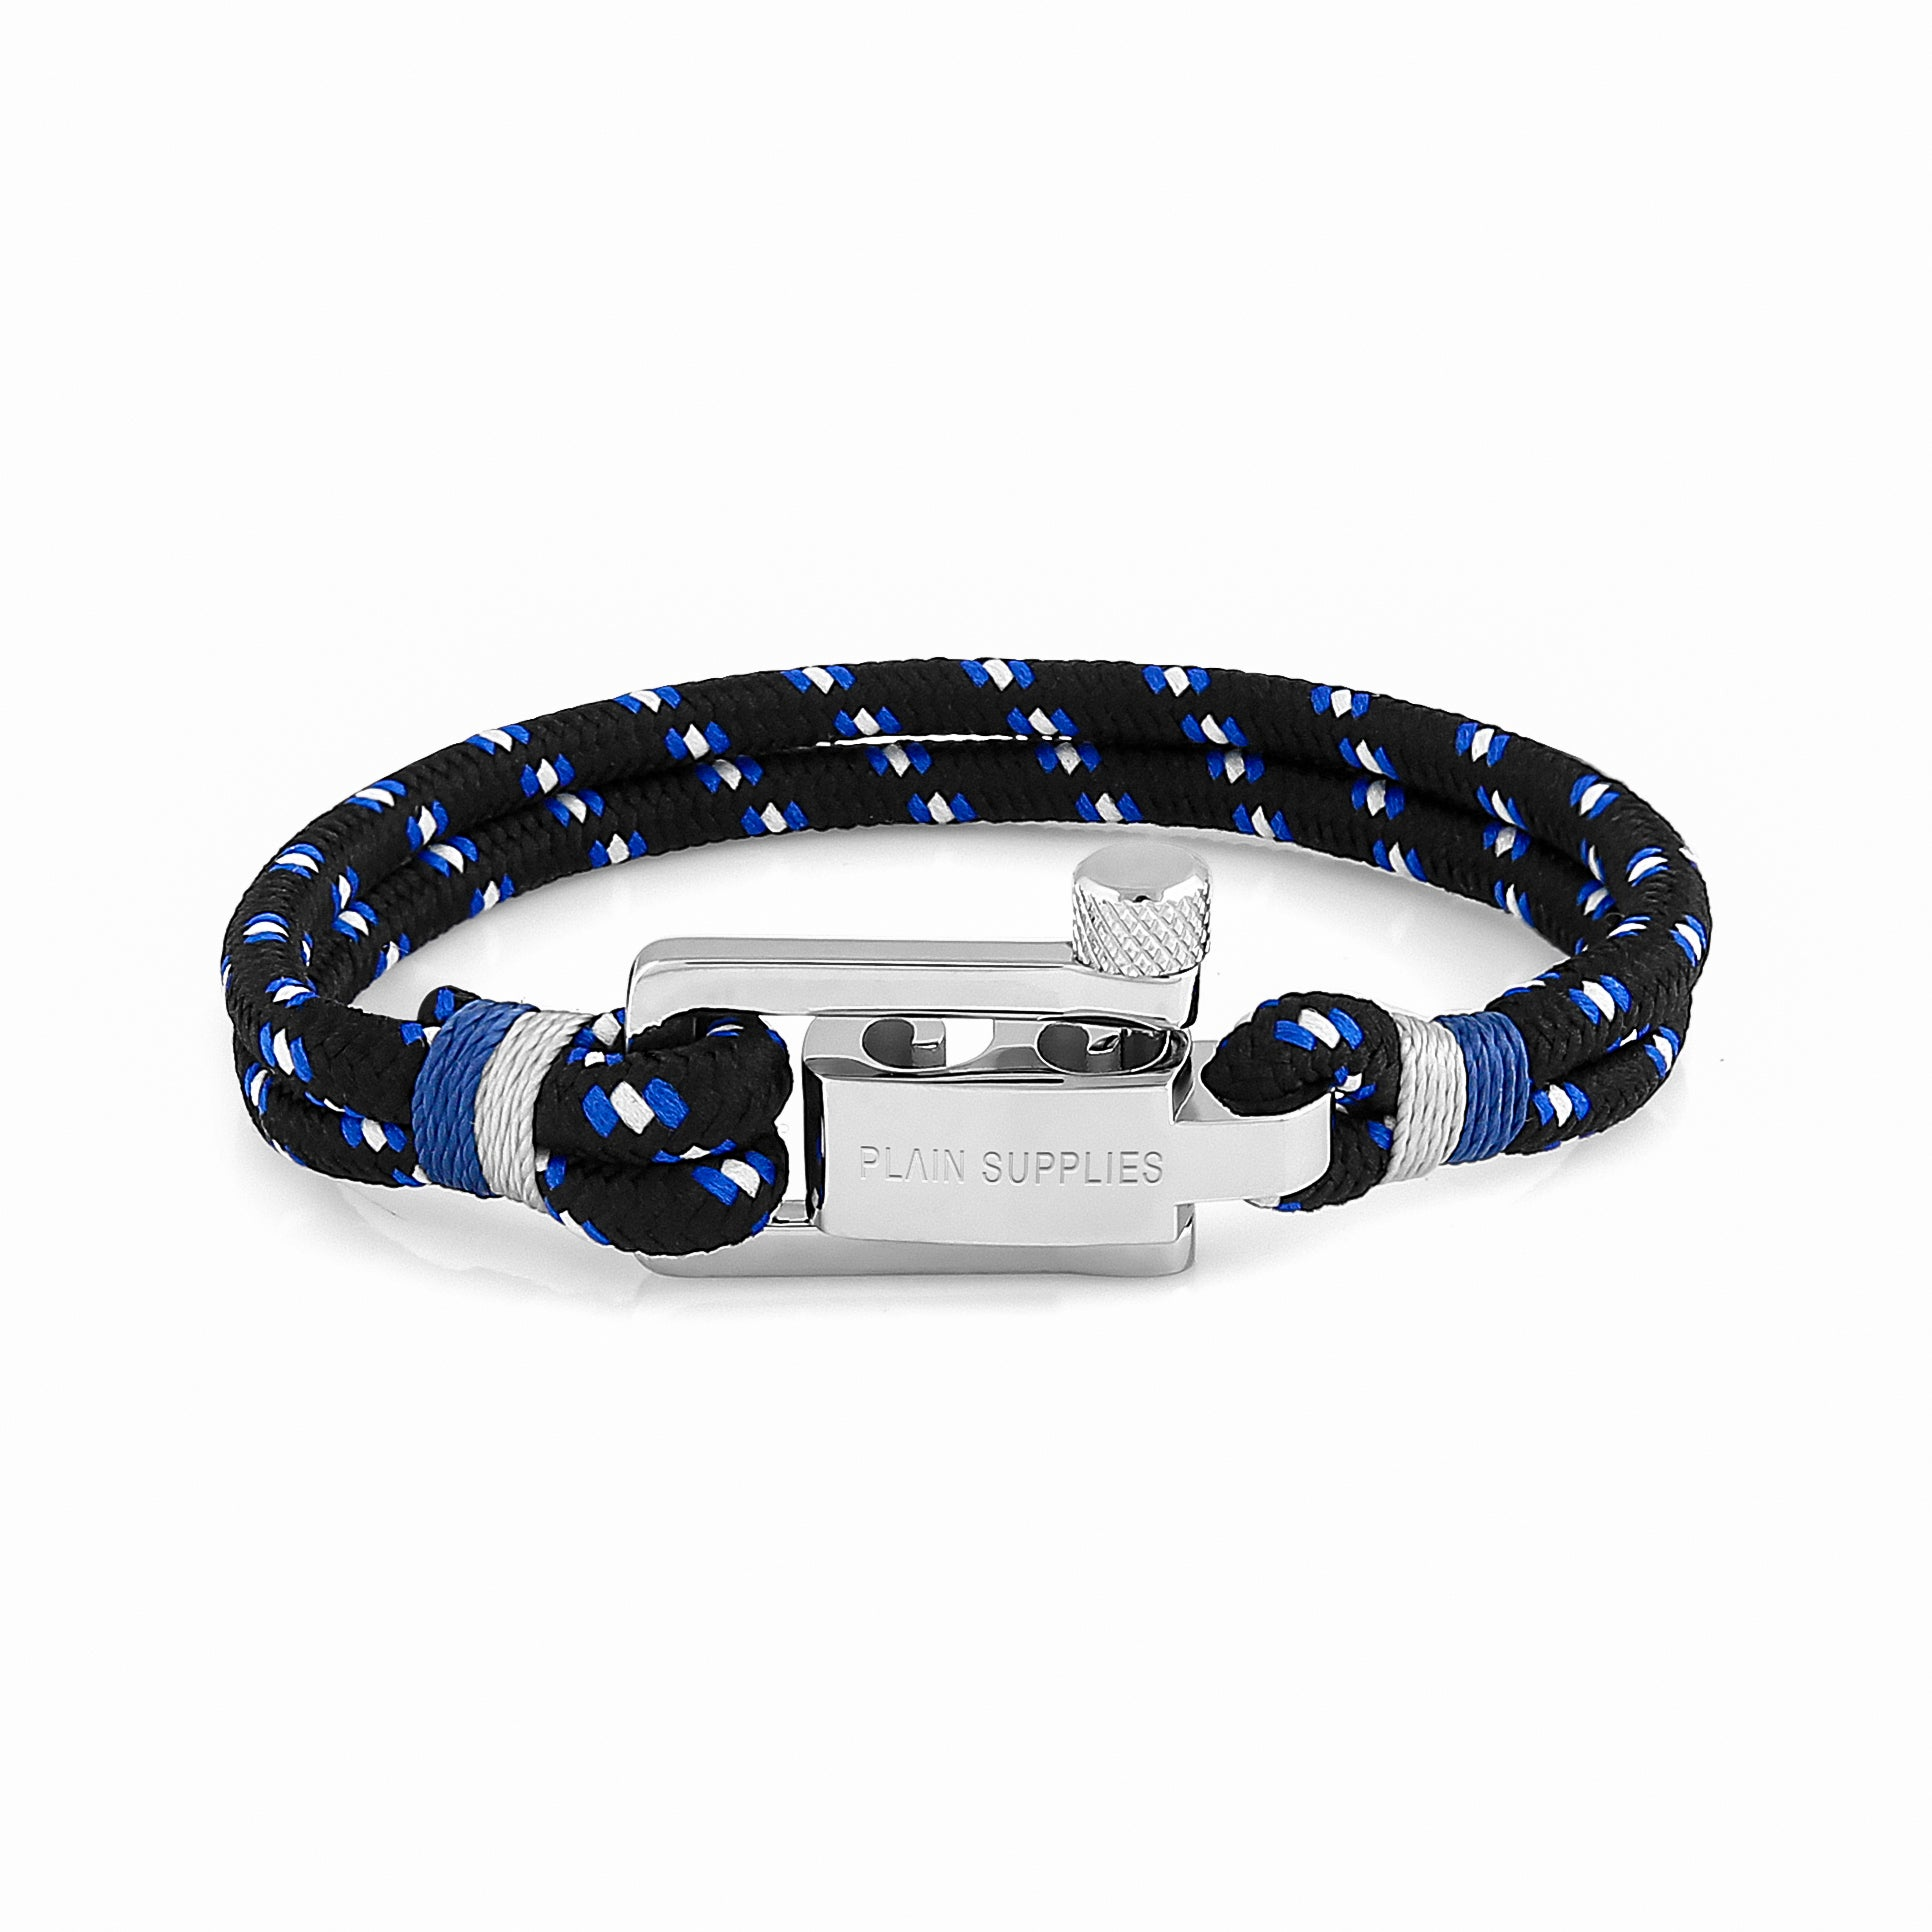 kiel constellation usa made bracelets rope james rodgers patrick in the anchor bracelet collections